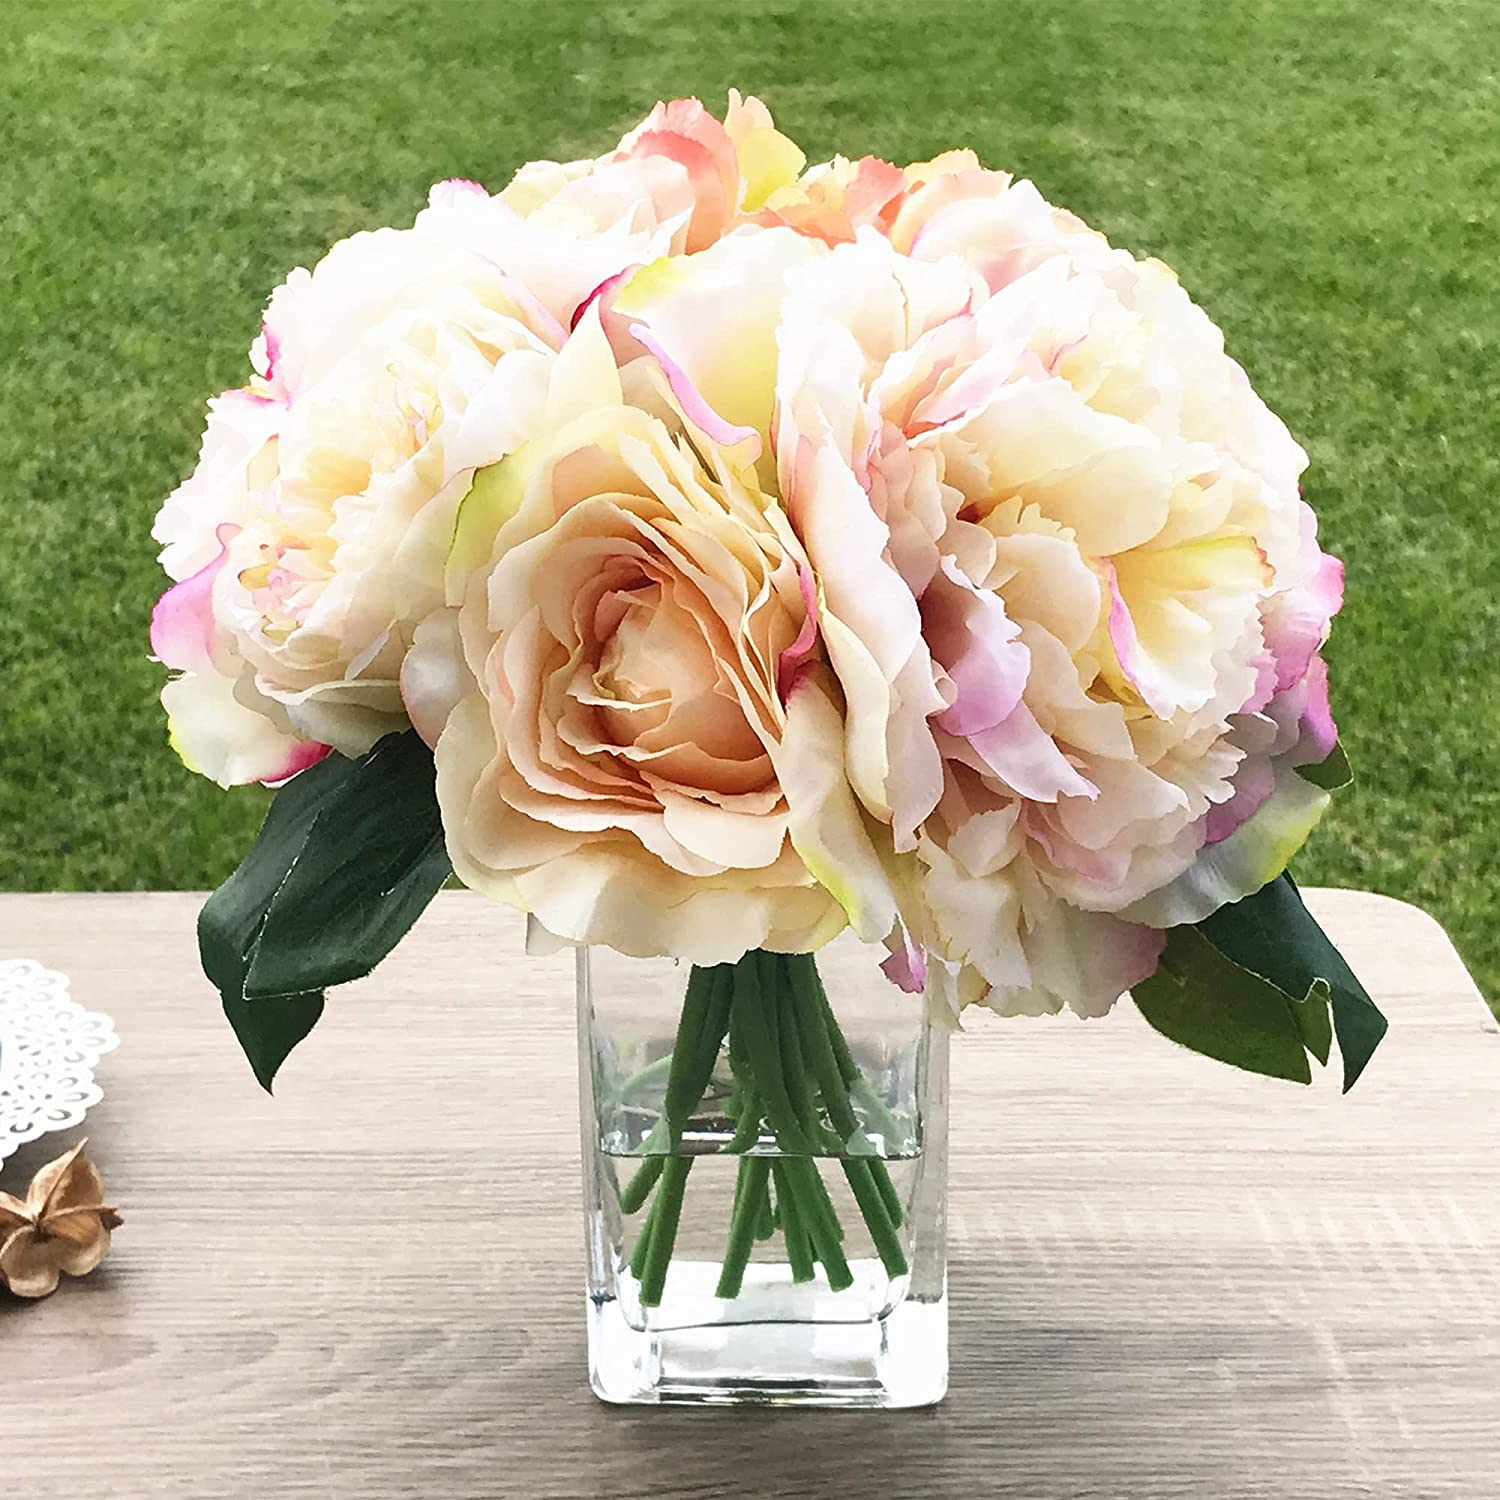 Enova Home Peony Rose and Hydrangea Mixed Artificial Indianapolis Mall Faux Flower Store